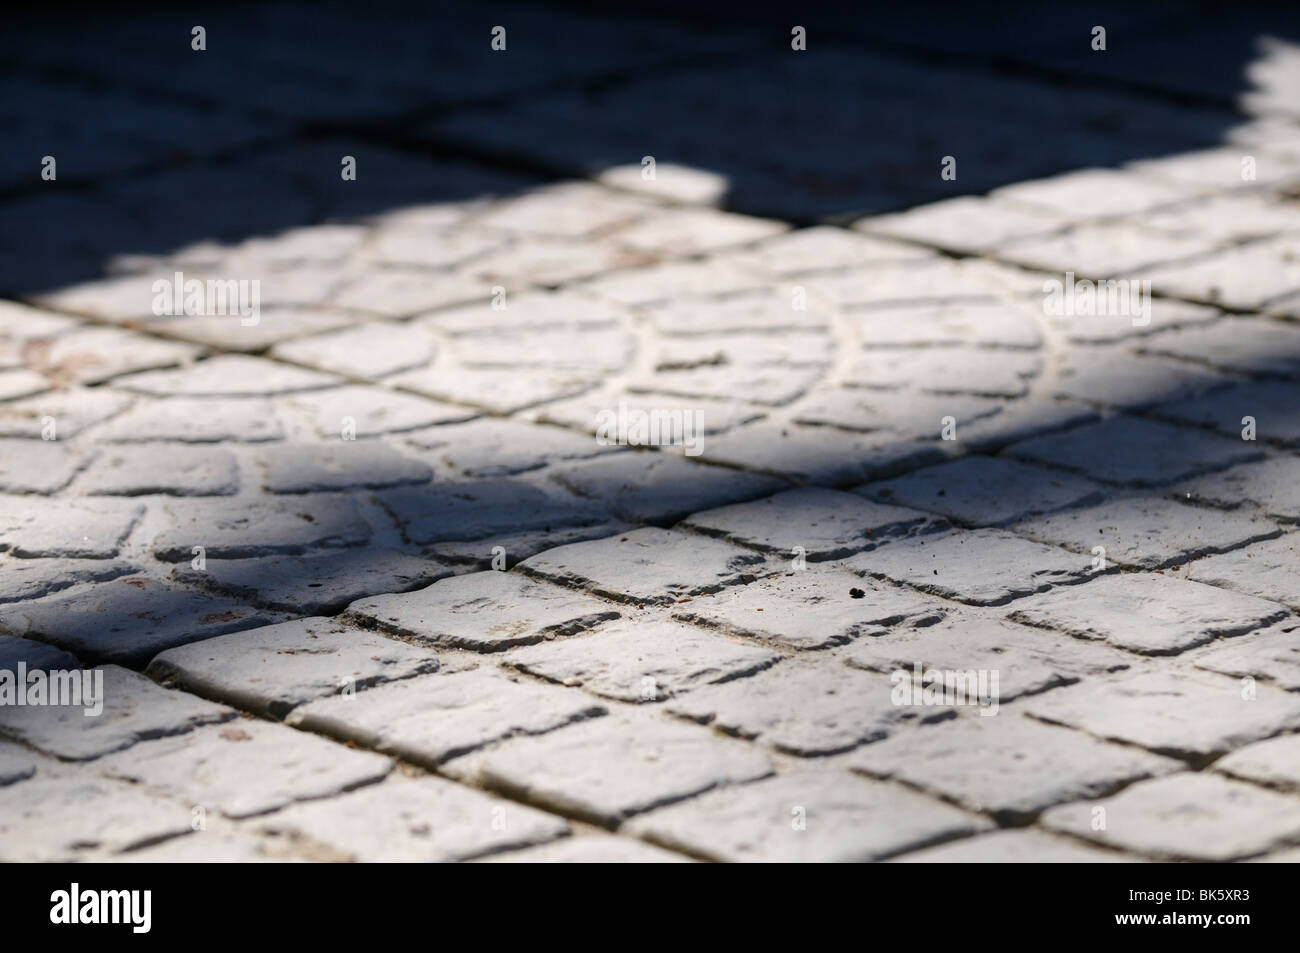 Stock photo of hand made paving slabs. Stock Photo